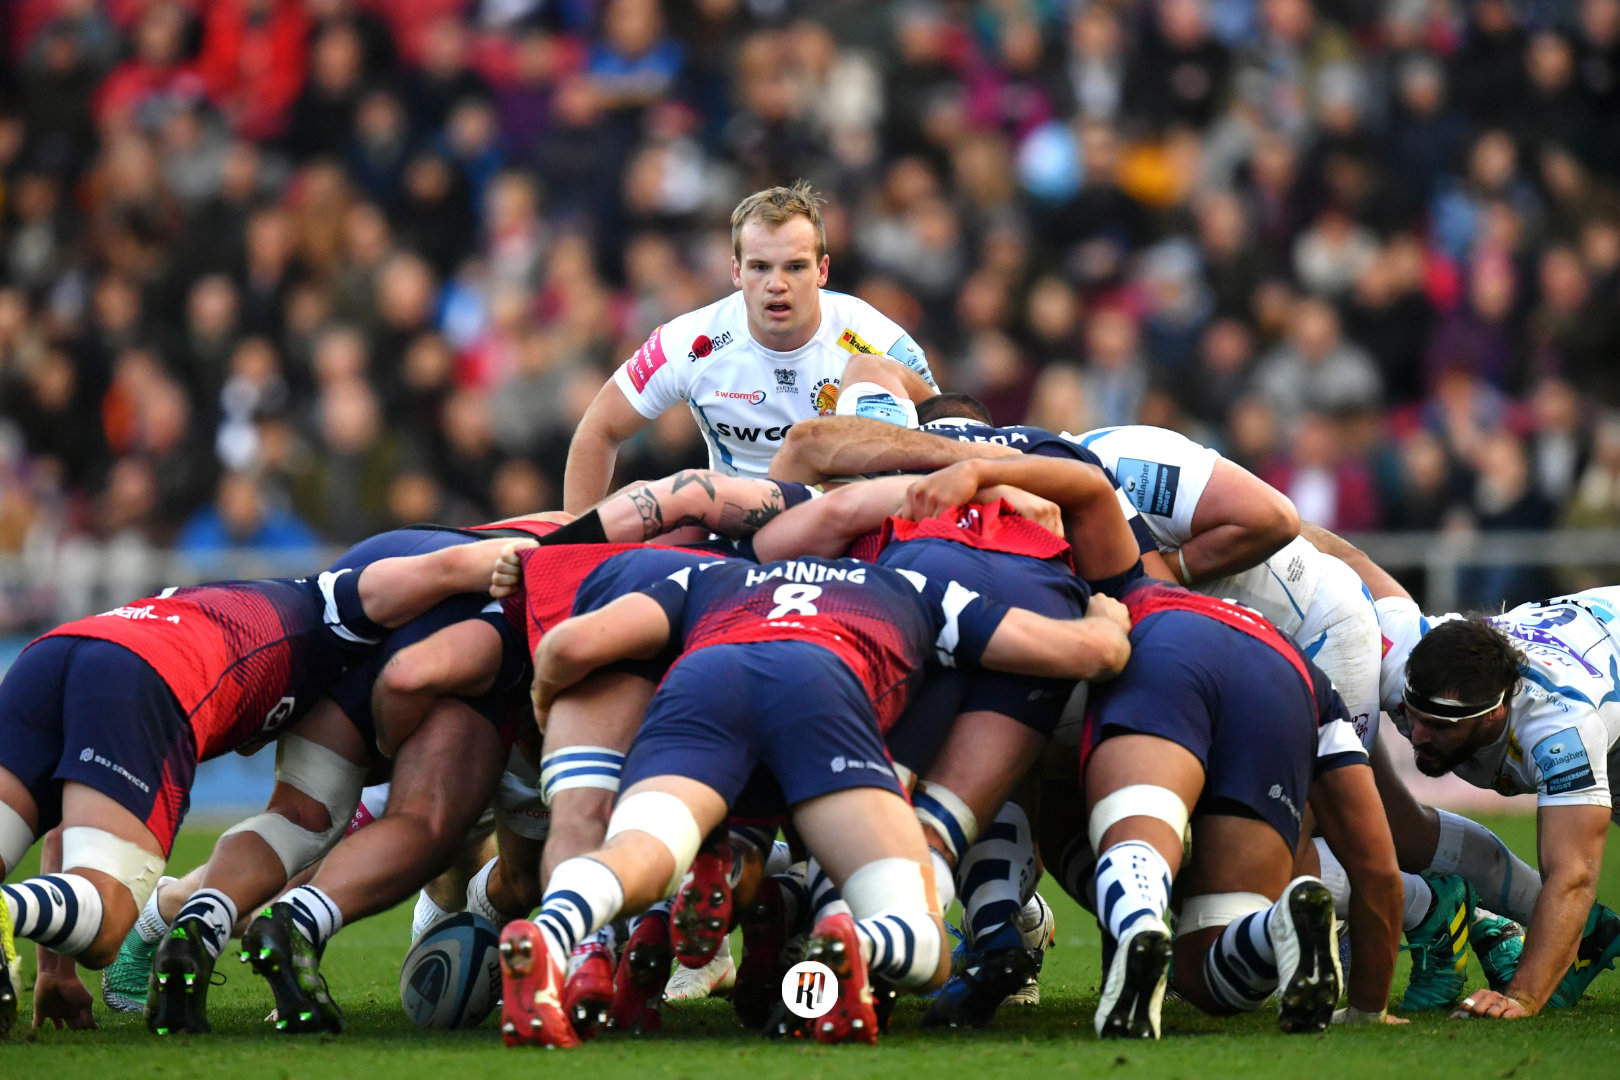 The scrum: is it a waste of time in the professional game?